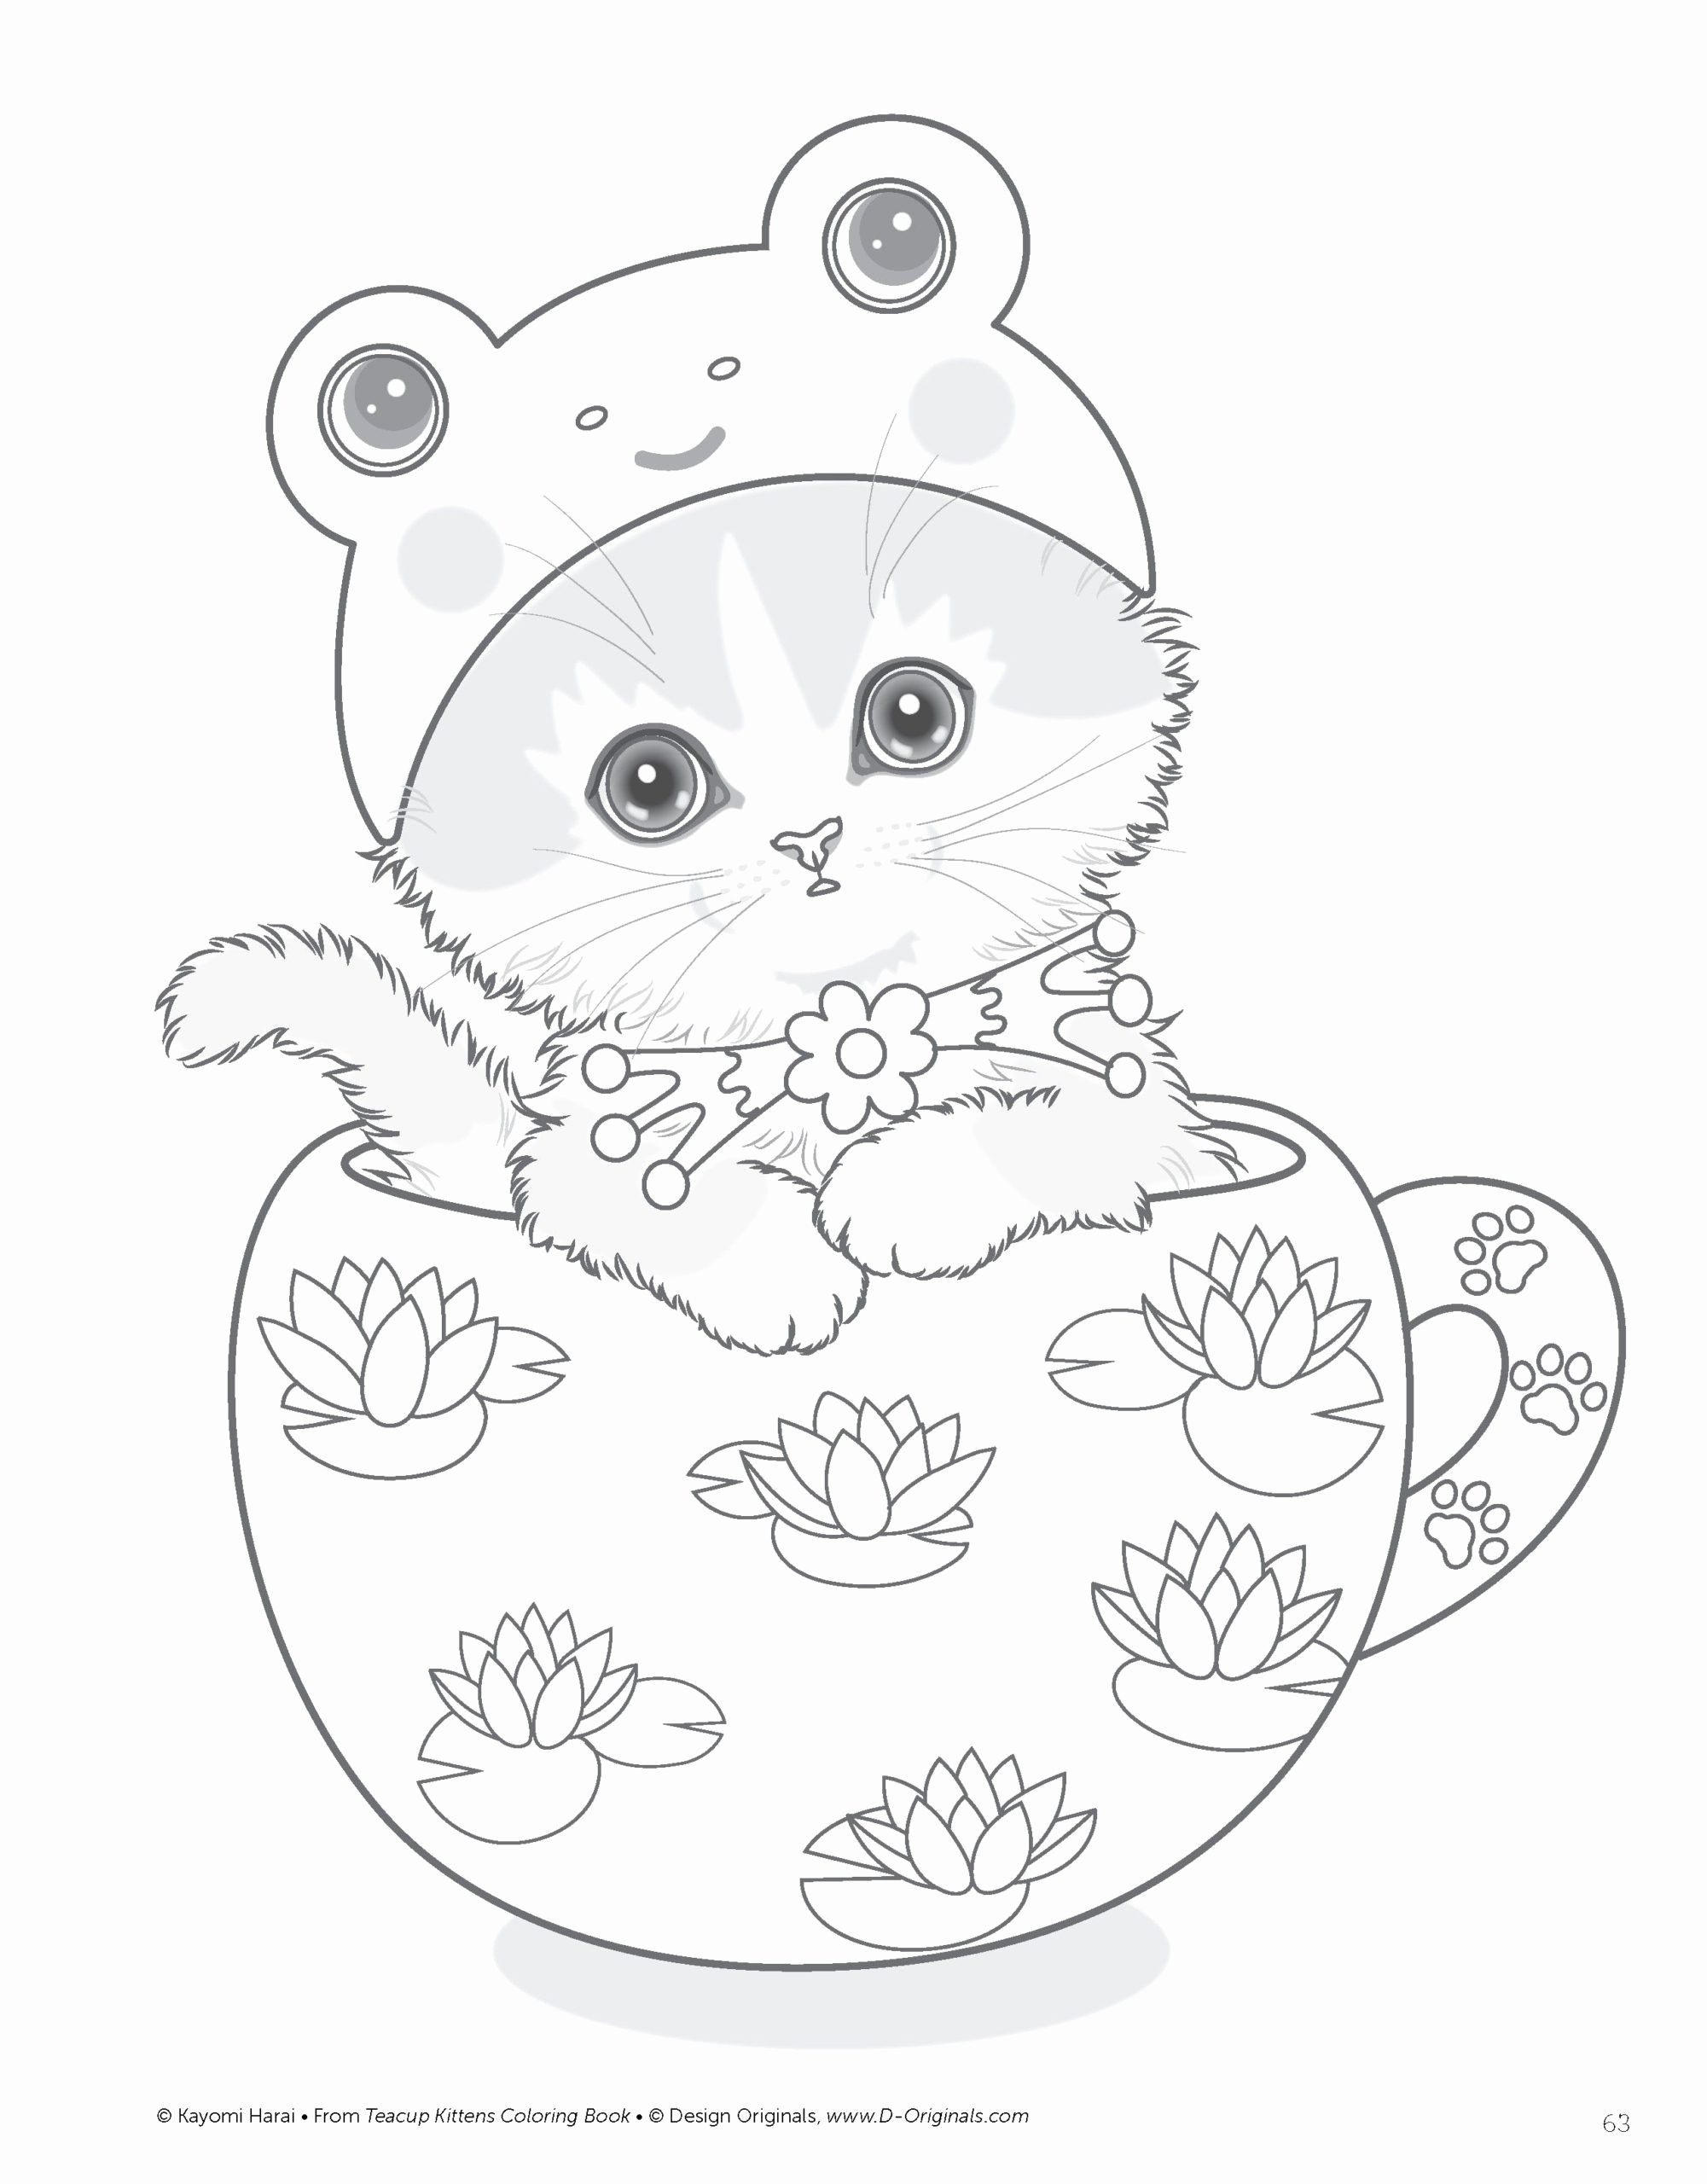 Printable Coloring Pages For Kids Cute Cat In 2020 Kitten Coloring Book Cat Coloring Book Kittens Coloring